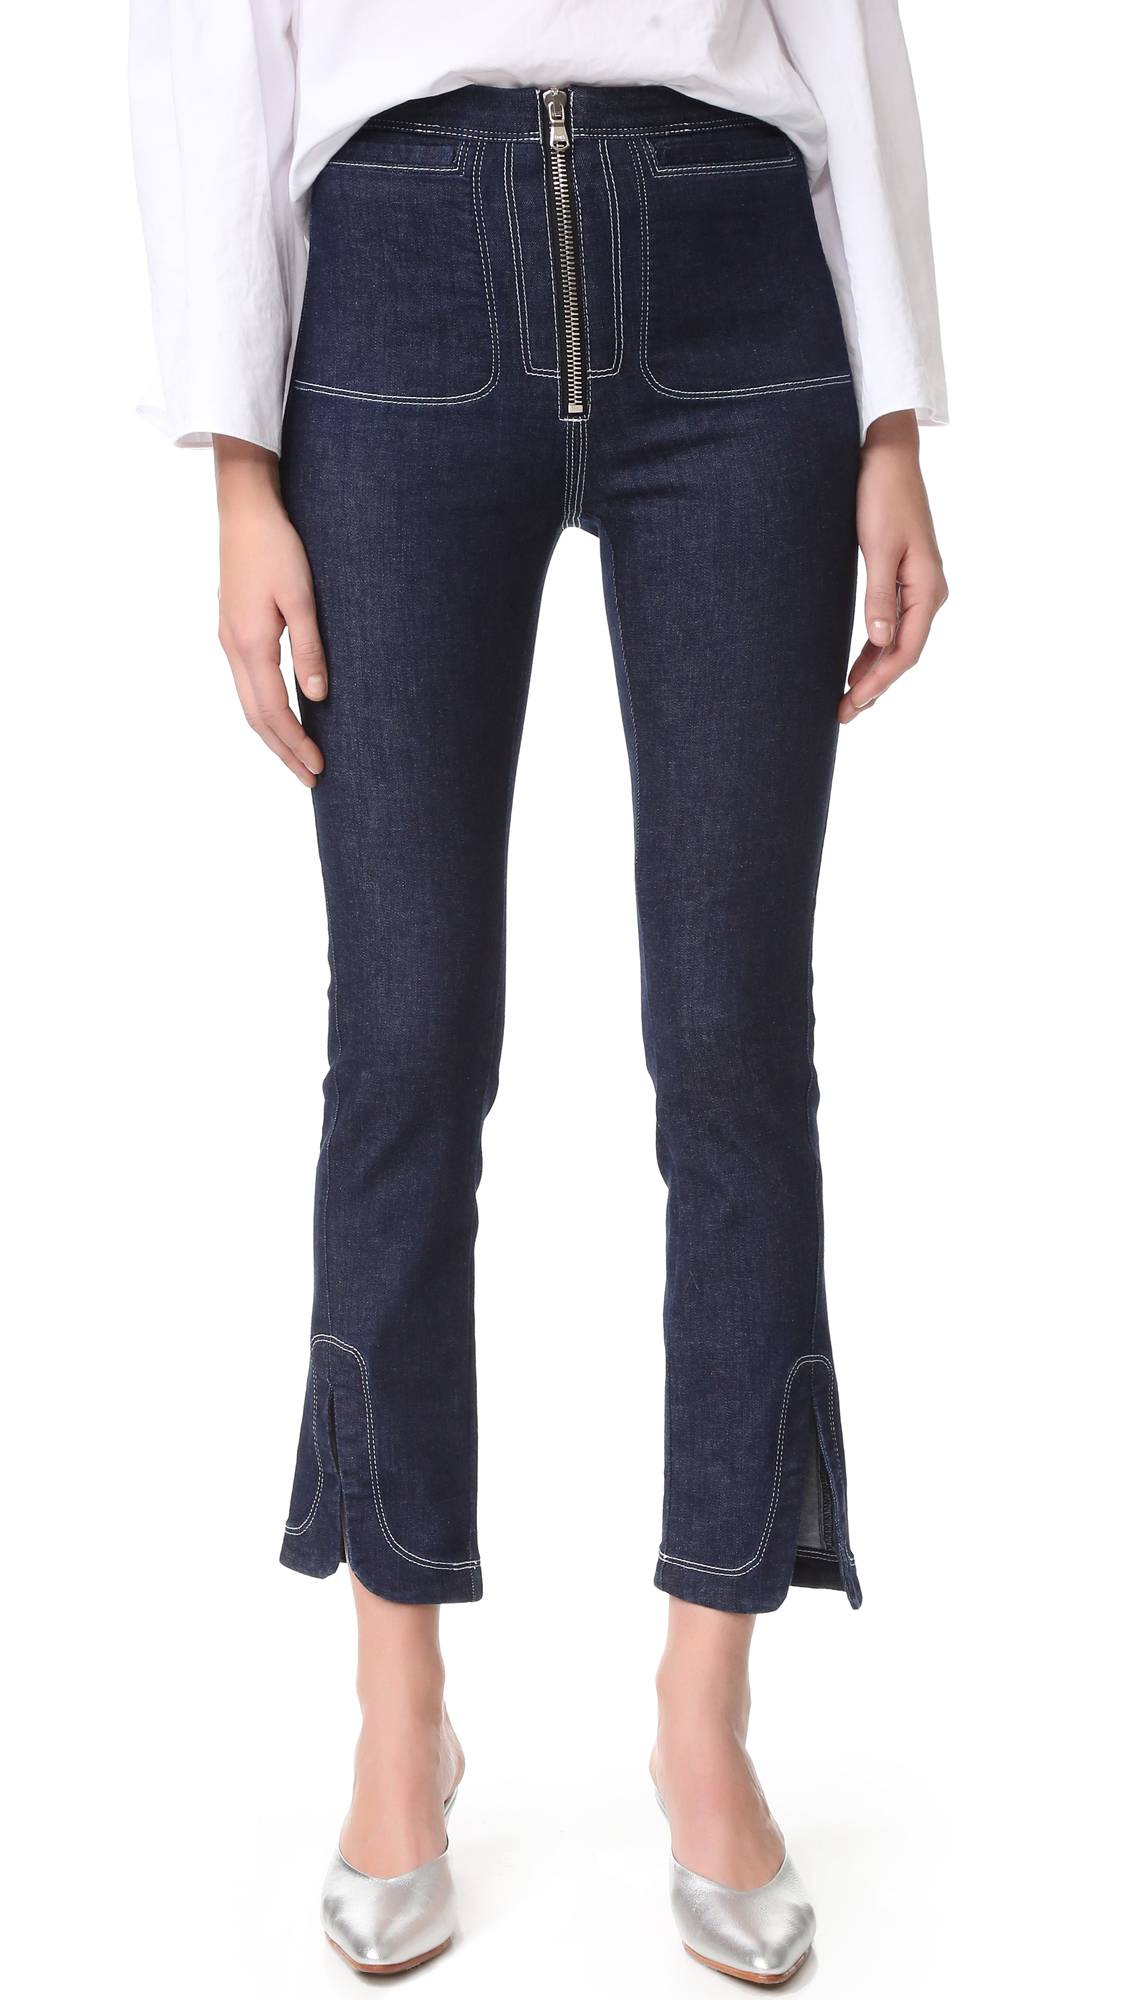 These lightweight, high waisted Rachel Comey jeans are finished with clean, contrast stitching. Welt hip pockets. Exposed zip closure. Vented hems. Fabric: Stretch denim. 89% cotton/8% polyester/3% spandex. Wash warm. Made in the USA. Measurements Rise: 11.25in / 28.5